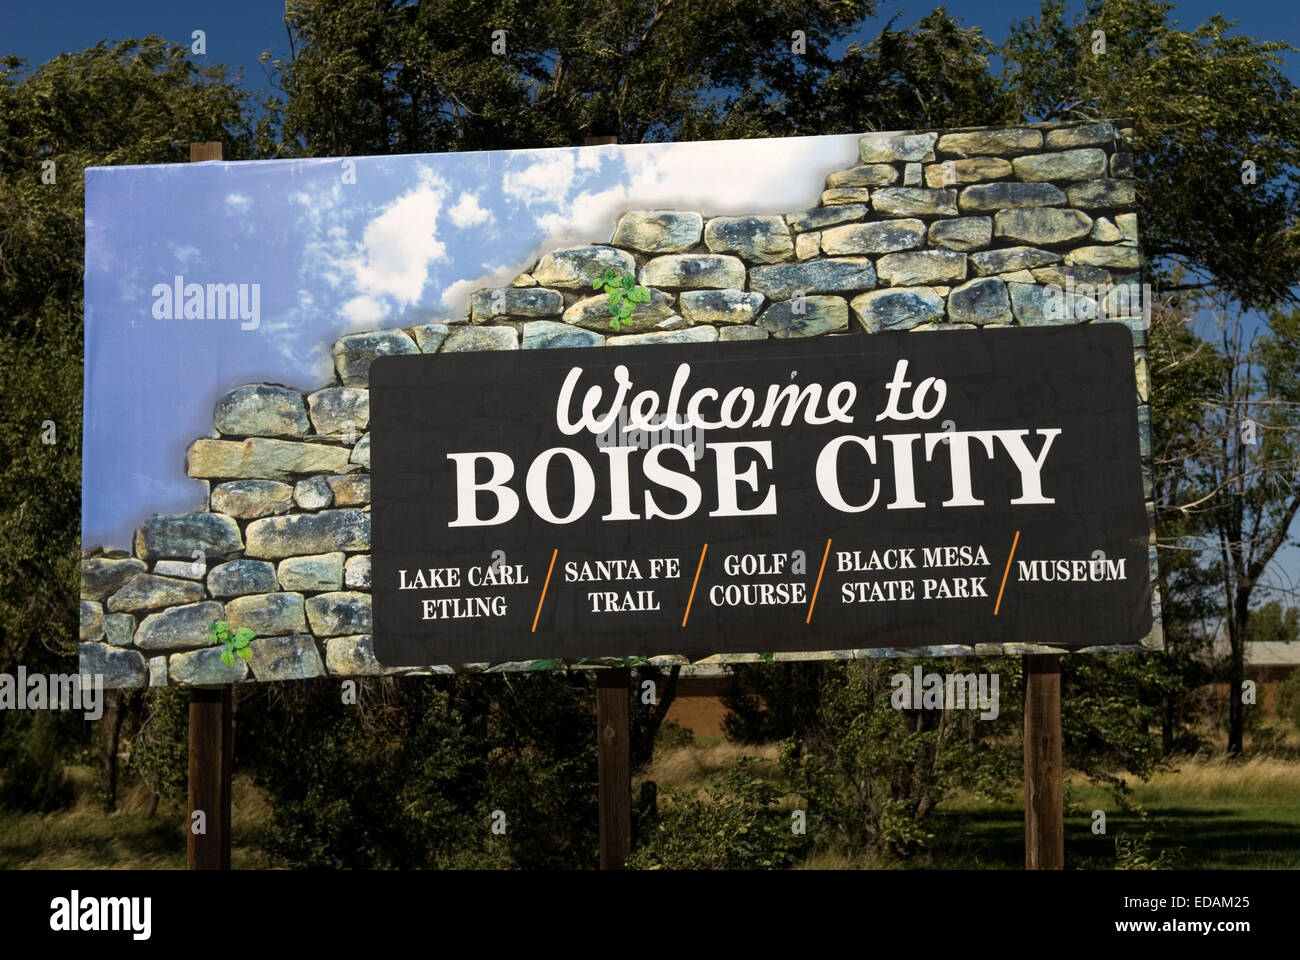 Personals in boise city ok Women - Sex, Dating & Personals in Boise city, oklahoma :: ™